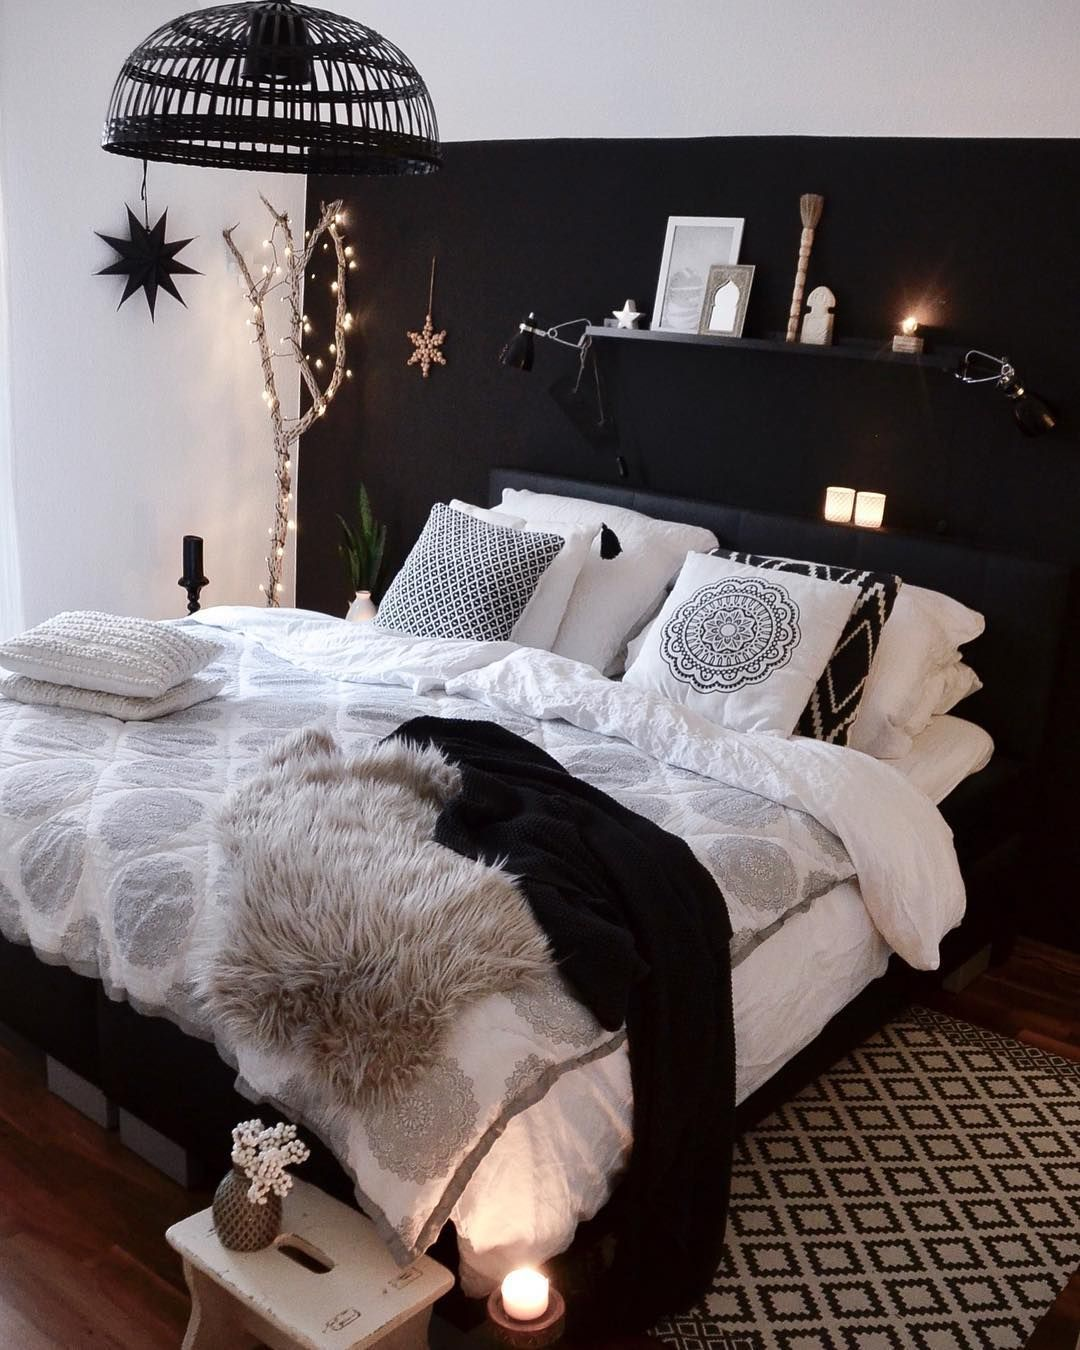 Interior Design Bedroom On Instagram How Captivating Is This Follow Modernbedspace Foll Bedroom Interior Bedroom Design Room Inspiration Bedroom Dream bedroom interior design